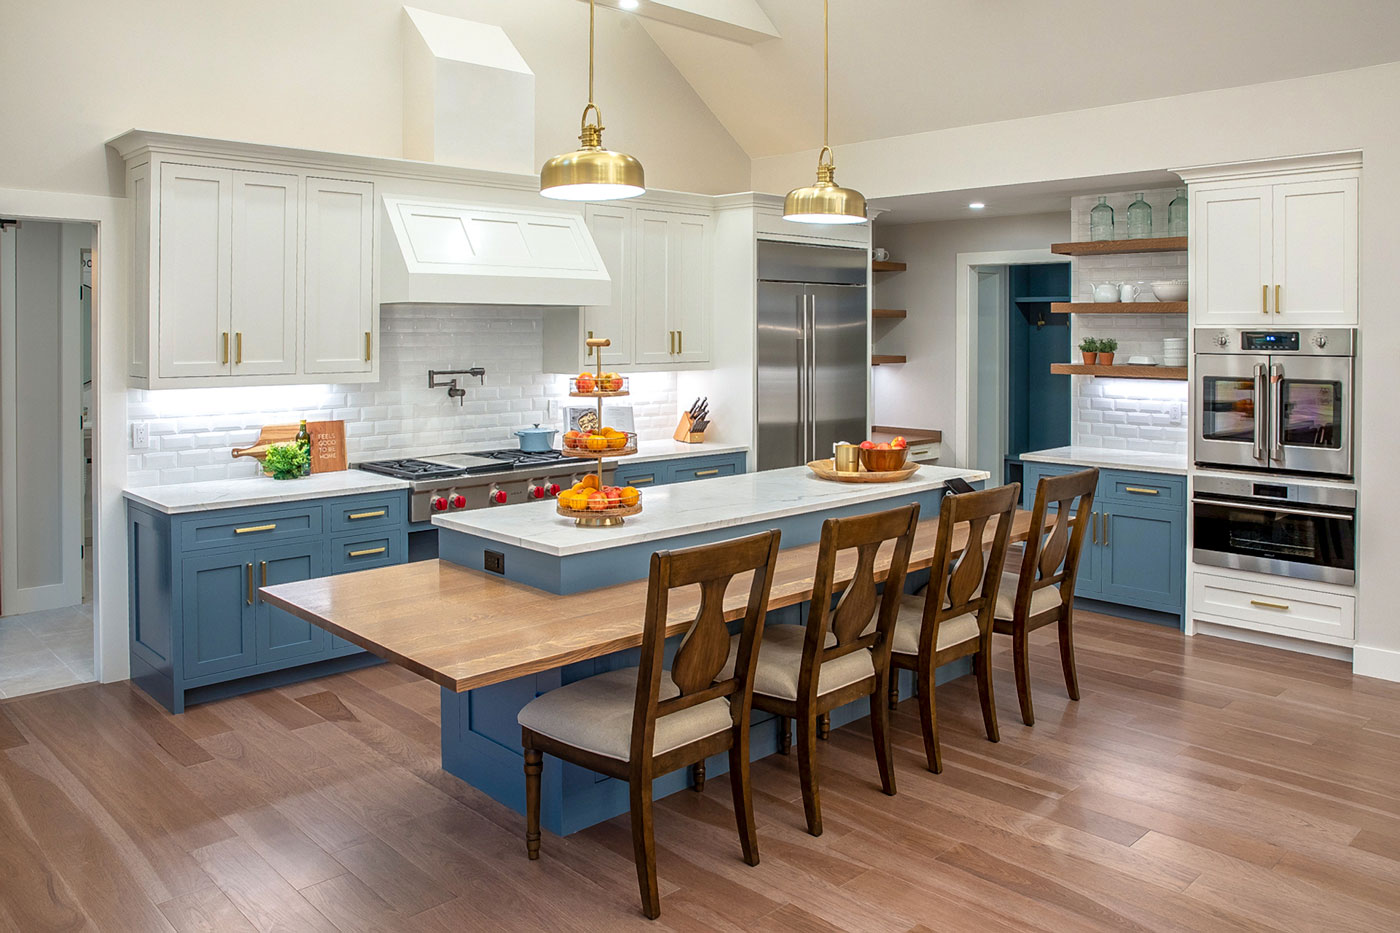 Custom kitchen of a specially adapted smart home, constructed through the R.I.S.E. program at the Gary Sinise Foundation